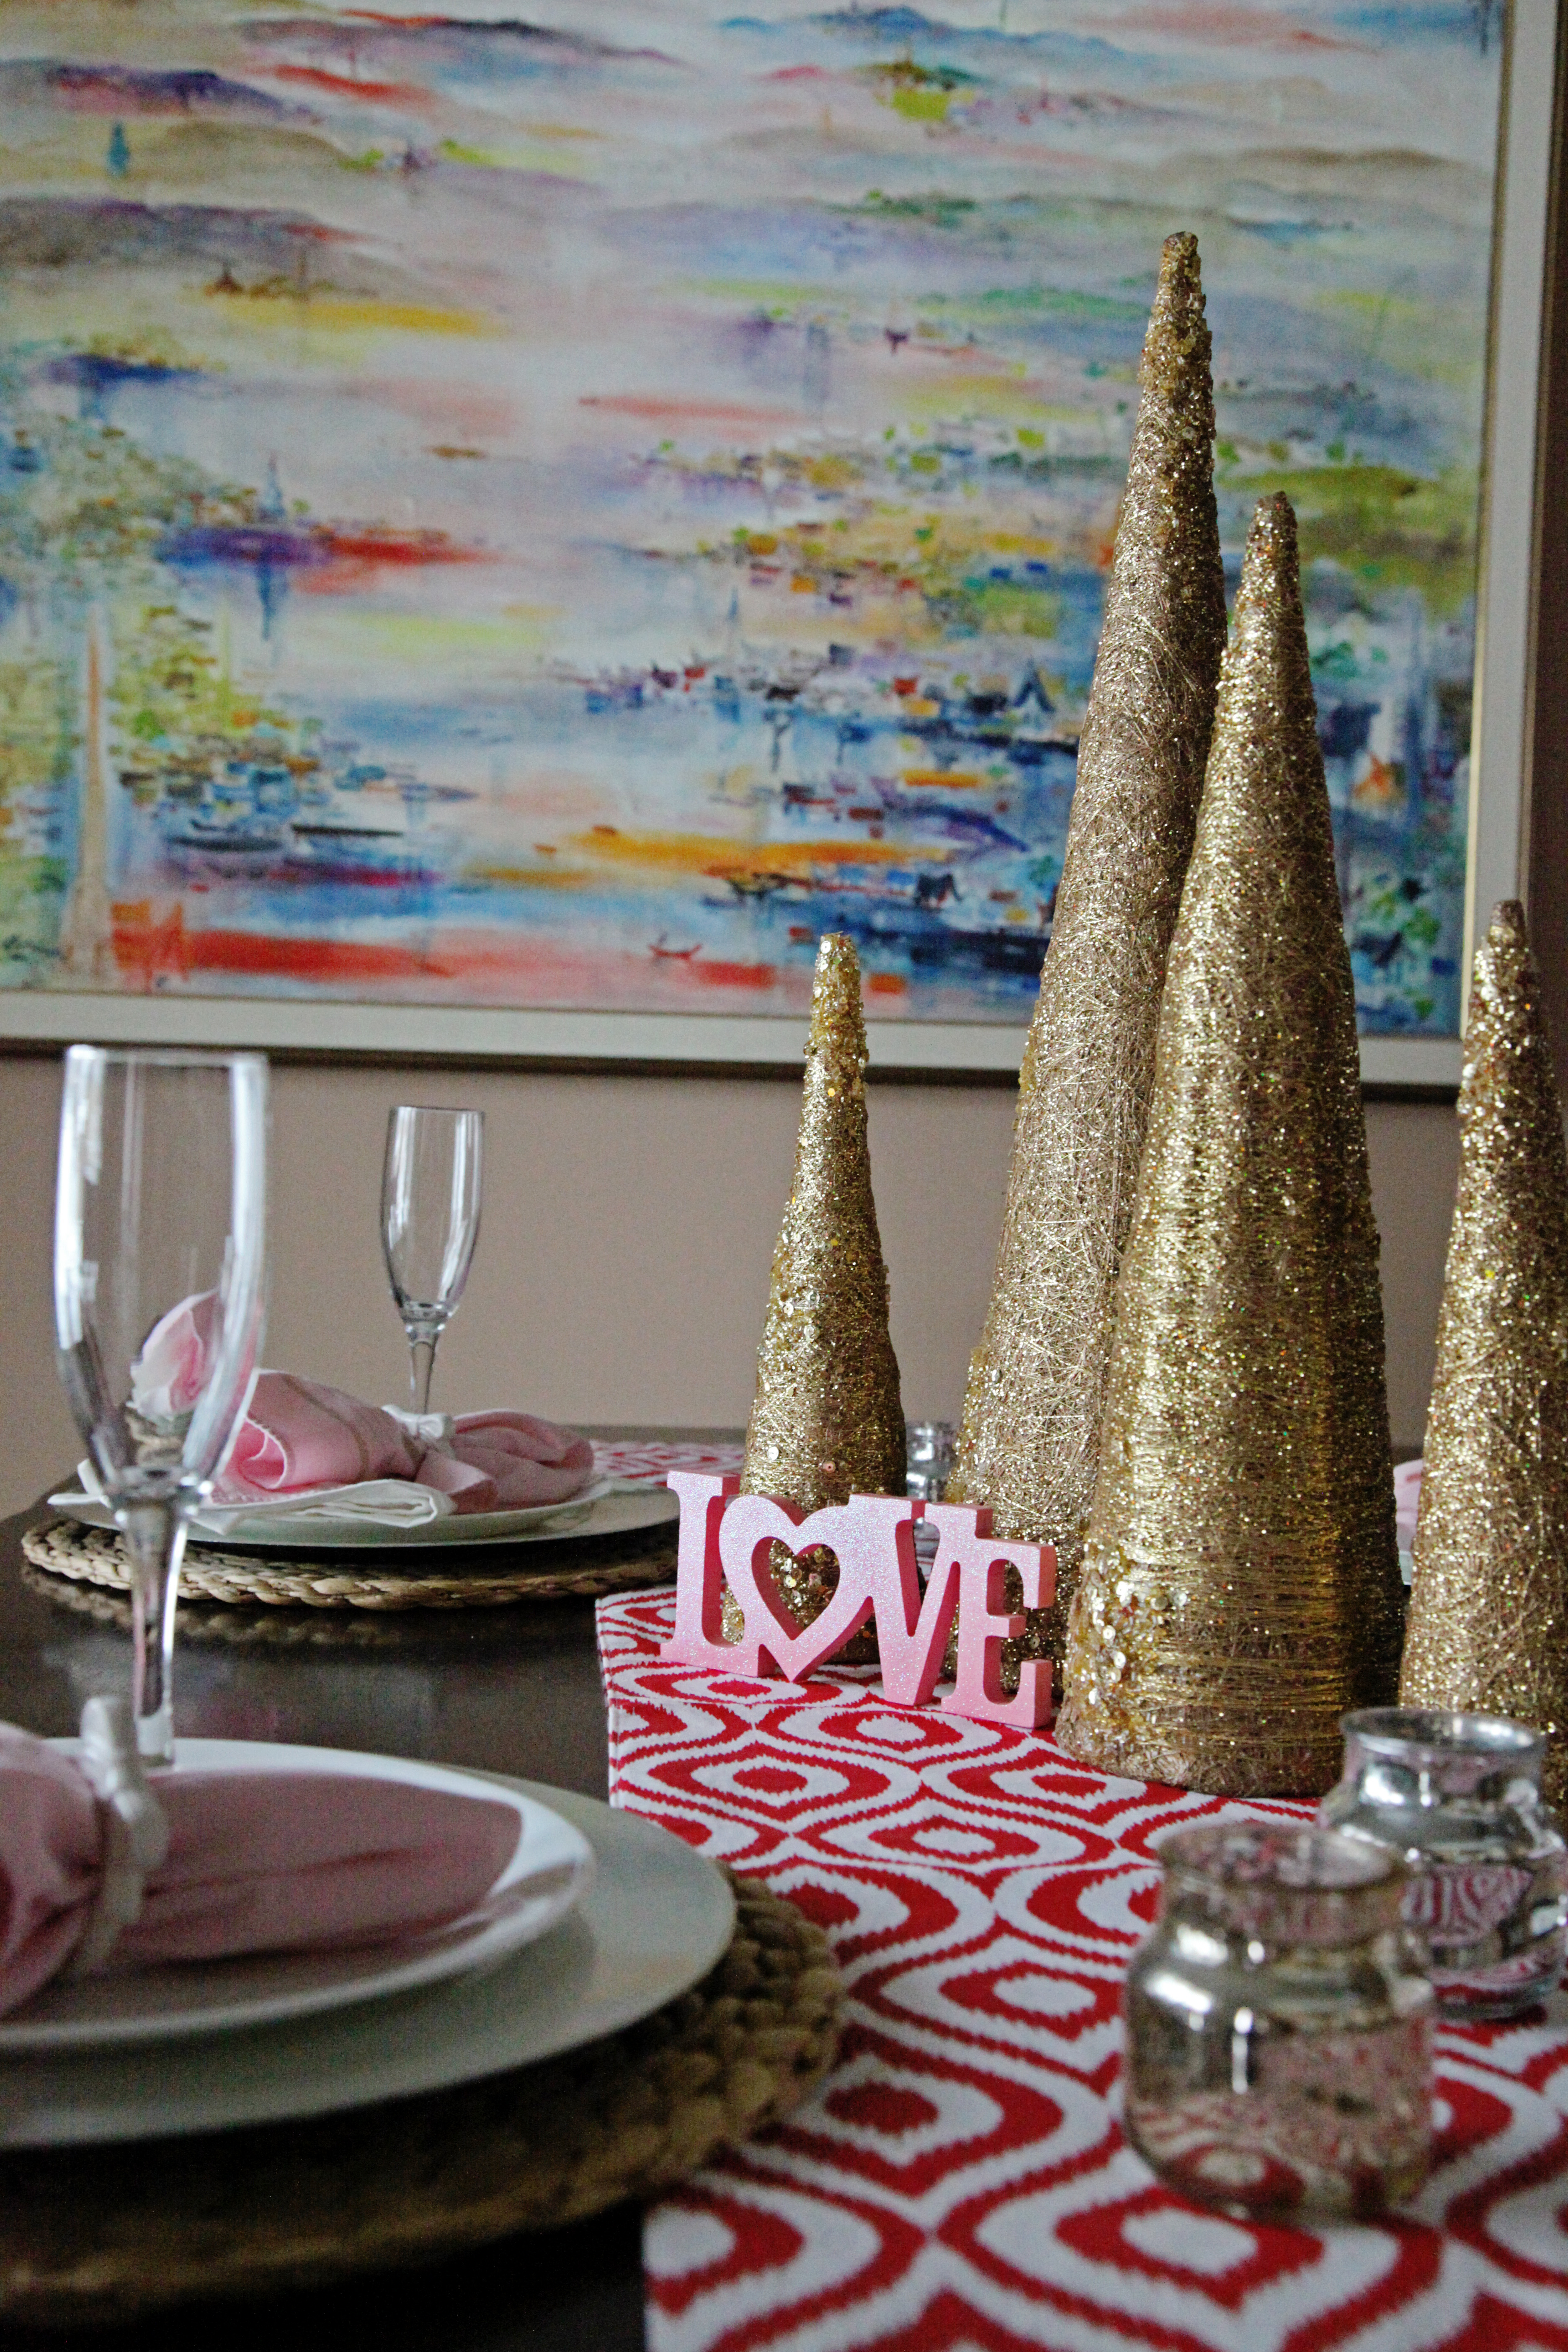 Valentines Day centerpiece using gold glitter christmas trees on top of a red ikat runner